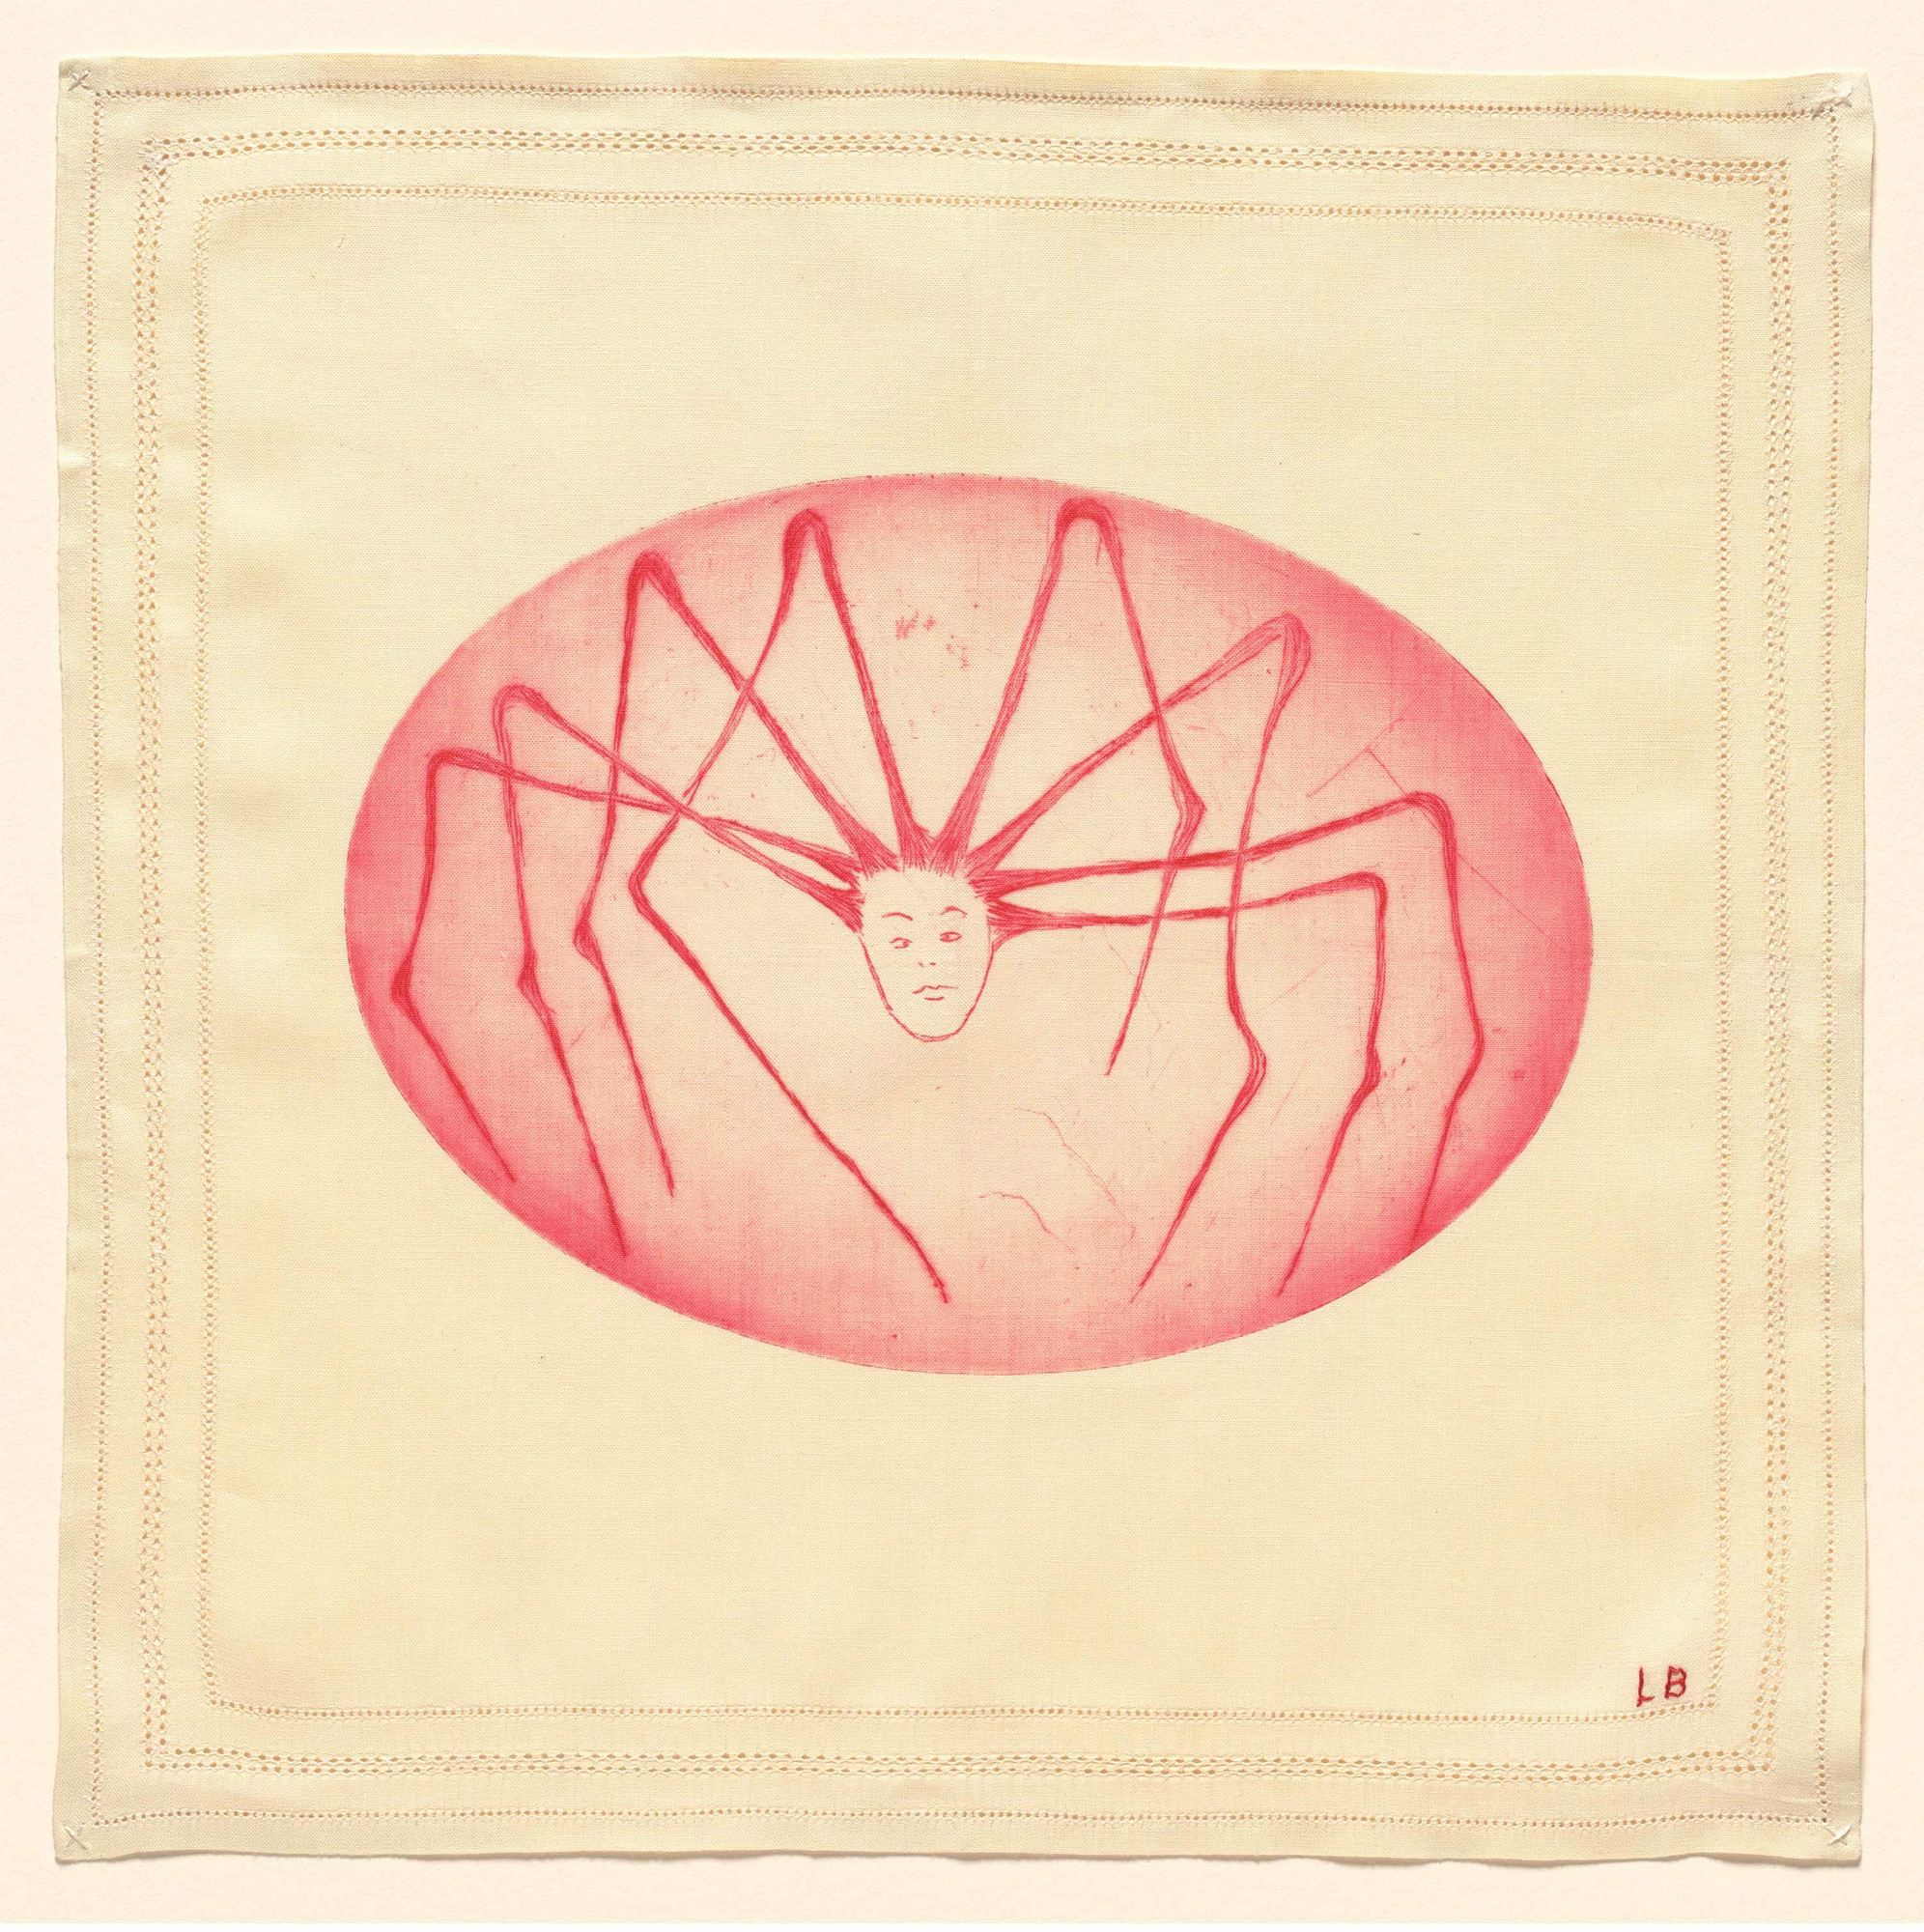 Louise Bourgeois. Spider Woman. 2004. Drypoint on fabric, sheet: 13 1/2 × 13 5/8″ (34.3 × 34.6 cm). The Museum of Modern Art, New York. Gift of The Easton Foundation. © 2017 The Easton Foundation/Licensed by VAGA, NY